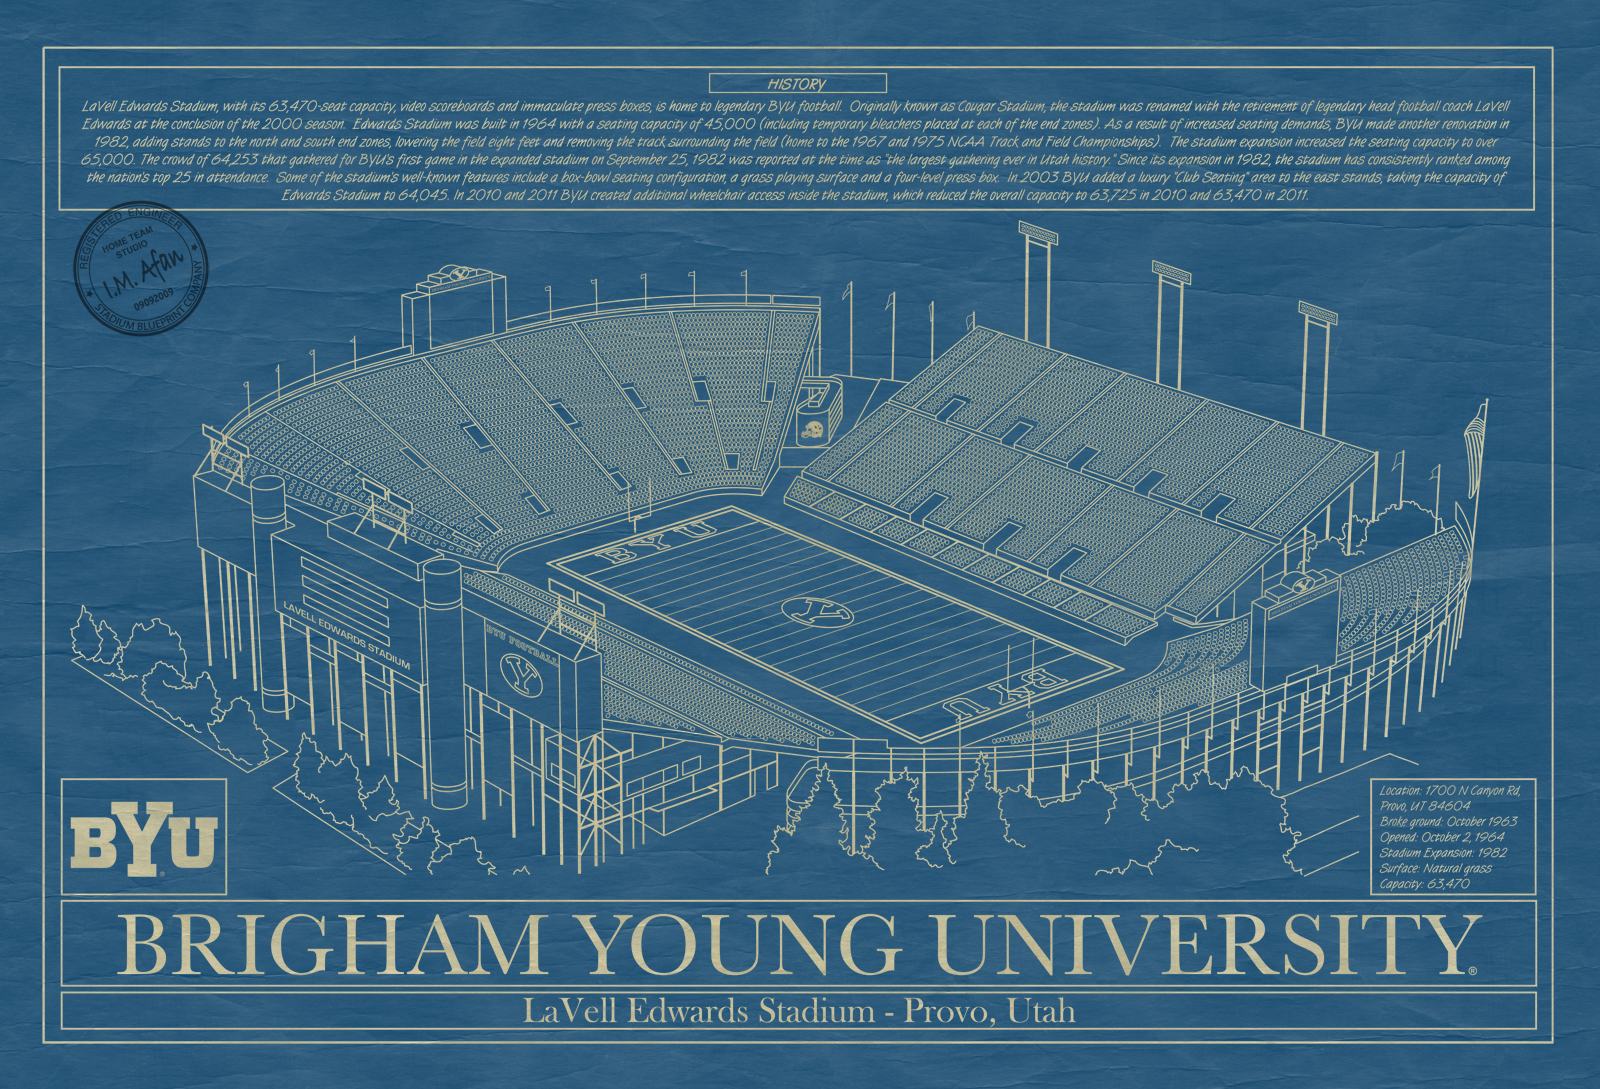 Brigham young university archives stadium blueprint company brigham young university lavell edwards stadium blueprint art malvernweather Gallery